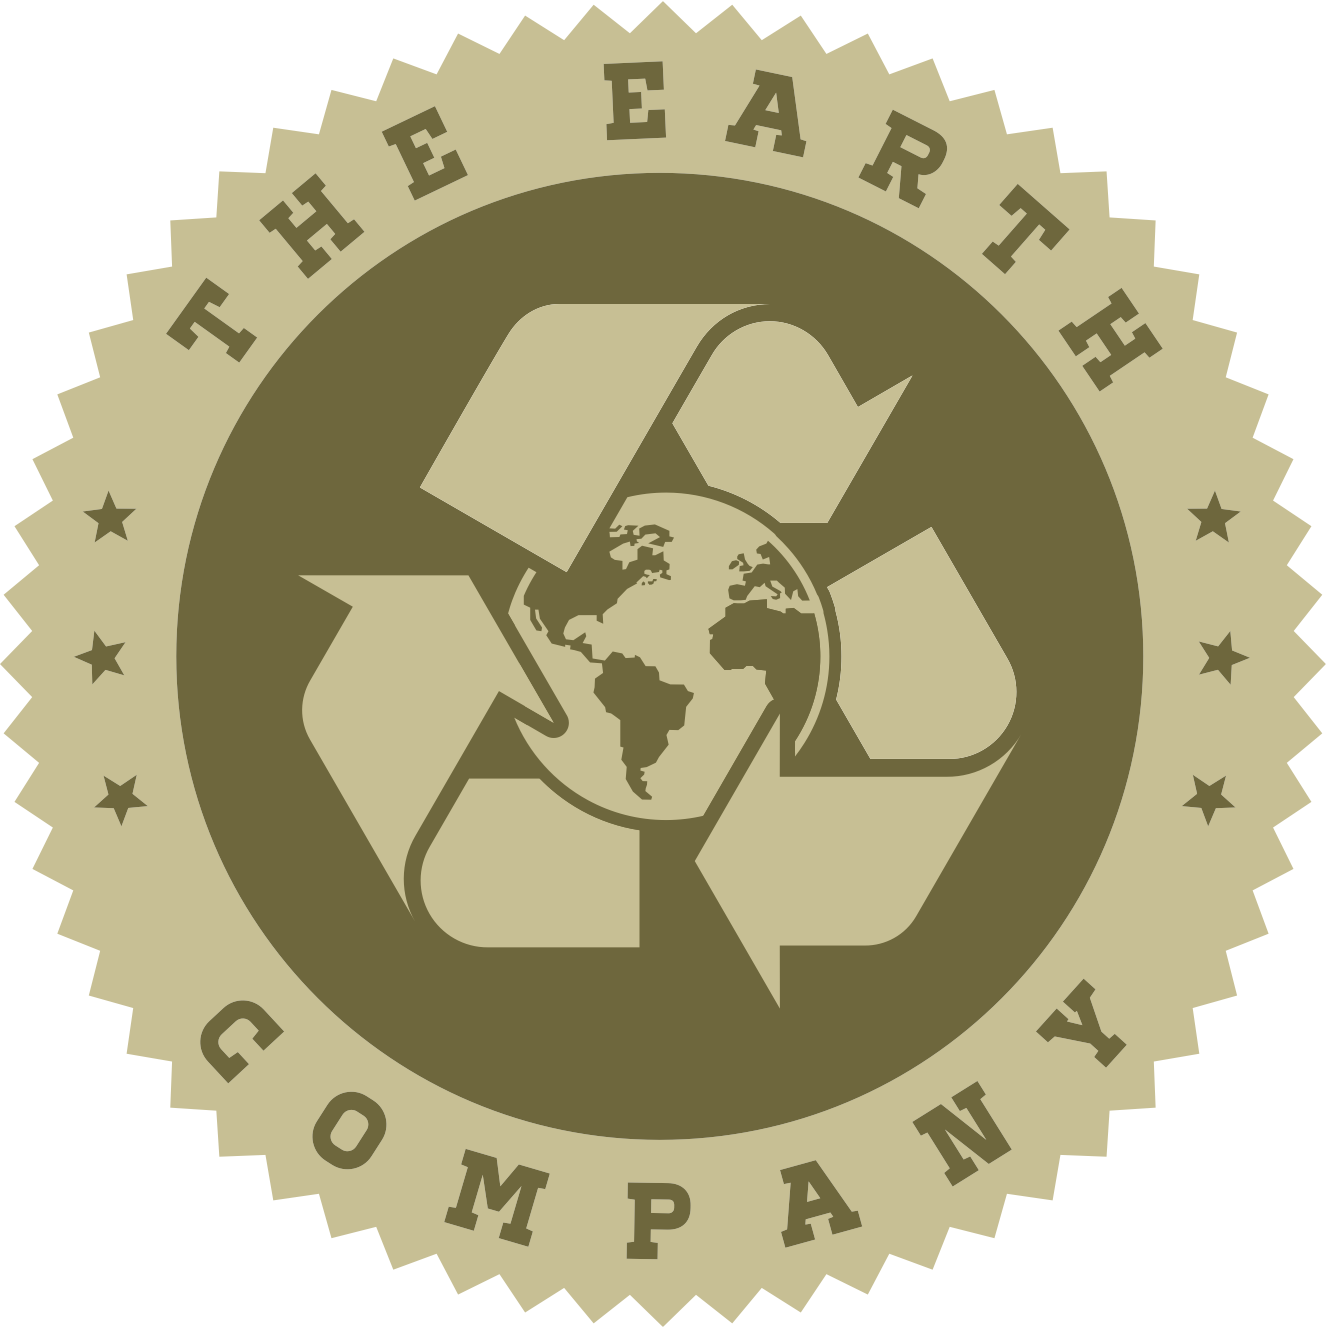 The Earth Company